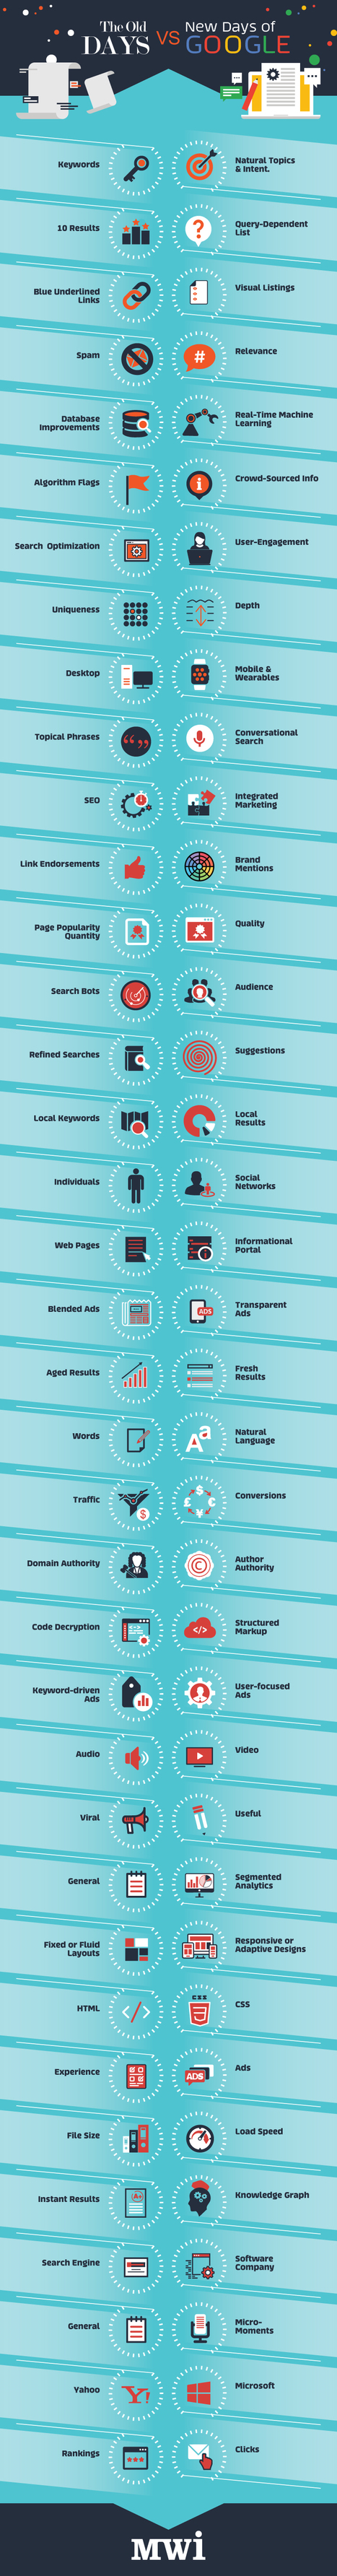 The Old Days VS New Days of Google [Infographic] | Pedagogia Infomacional | Scoop.it